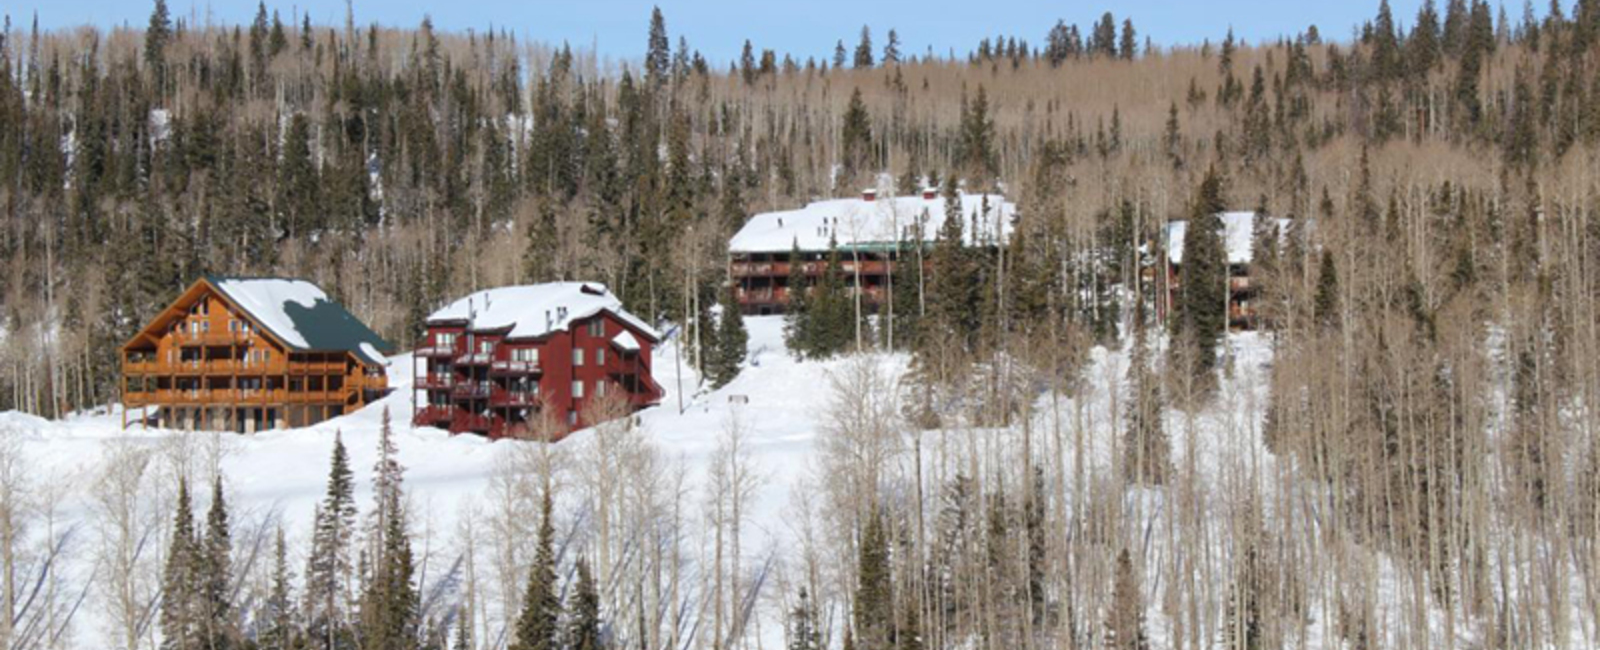 Kids Under Six Ride And Ski For In Out Lodging Starts At 79 Per Night Our Vacation Planners Are Available Seven Days A Week To Help You